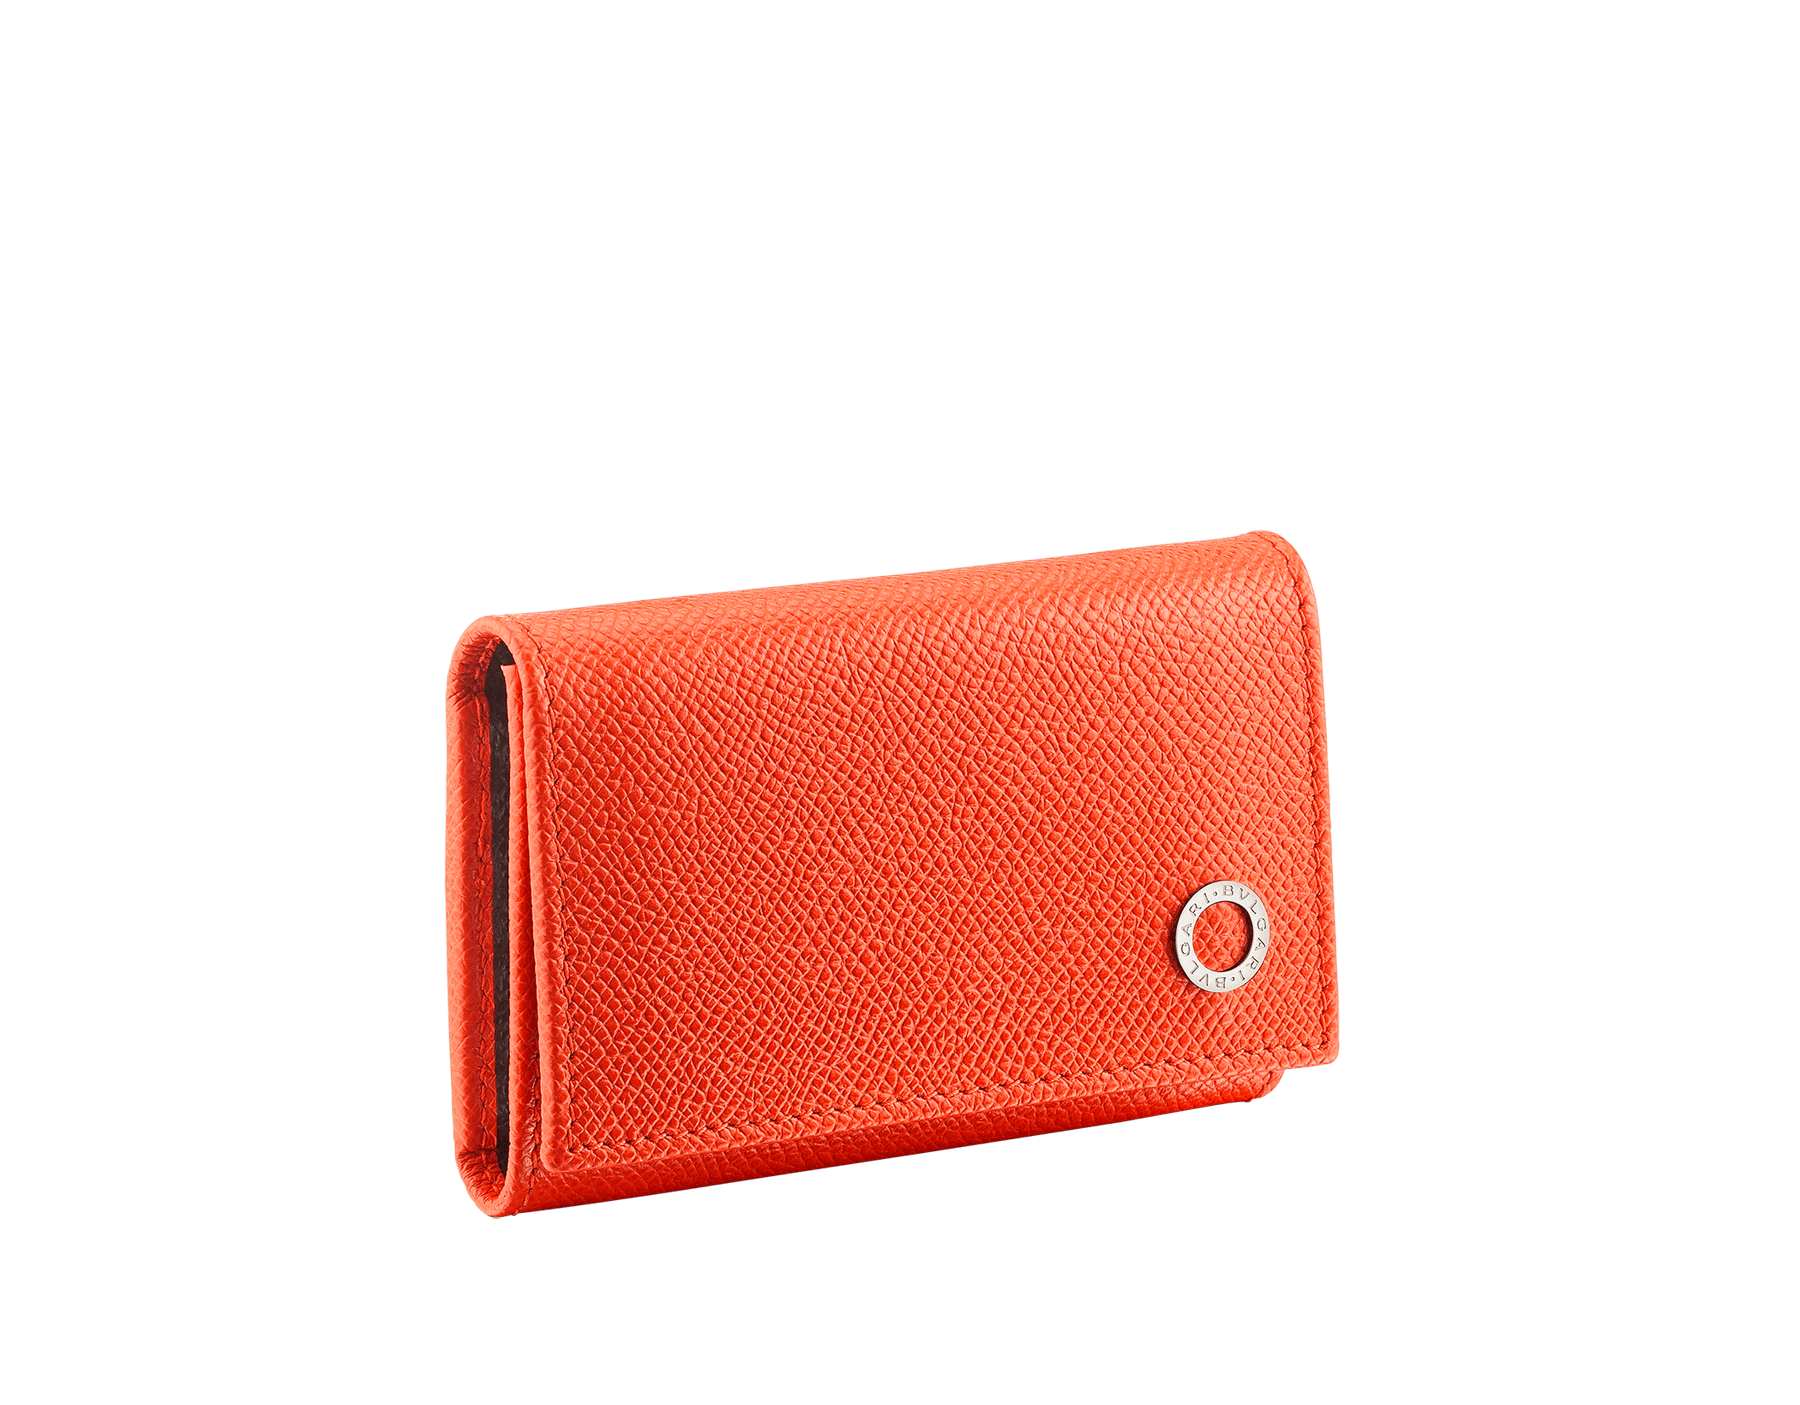 BVLGARI BVLGARI double keyholder in fire amber and charcoal diamond grain calf leather. Detachable car keyholder in palladium plated brass. 289134 image 1